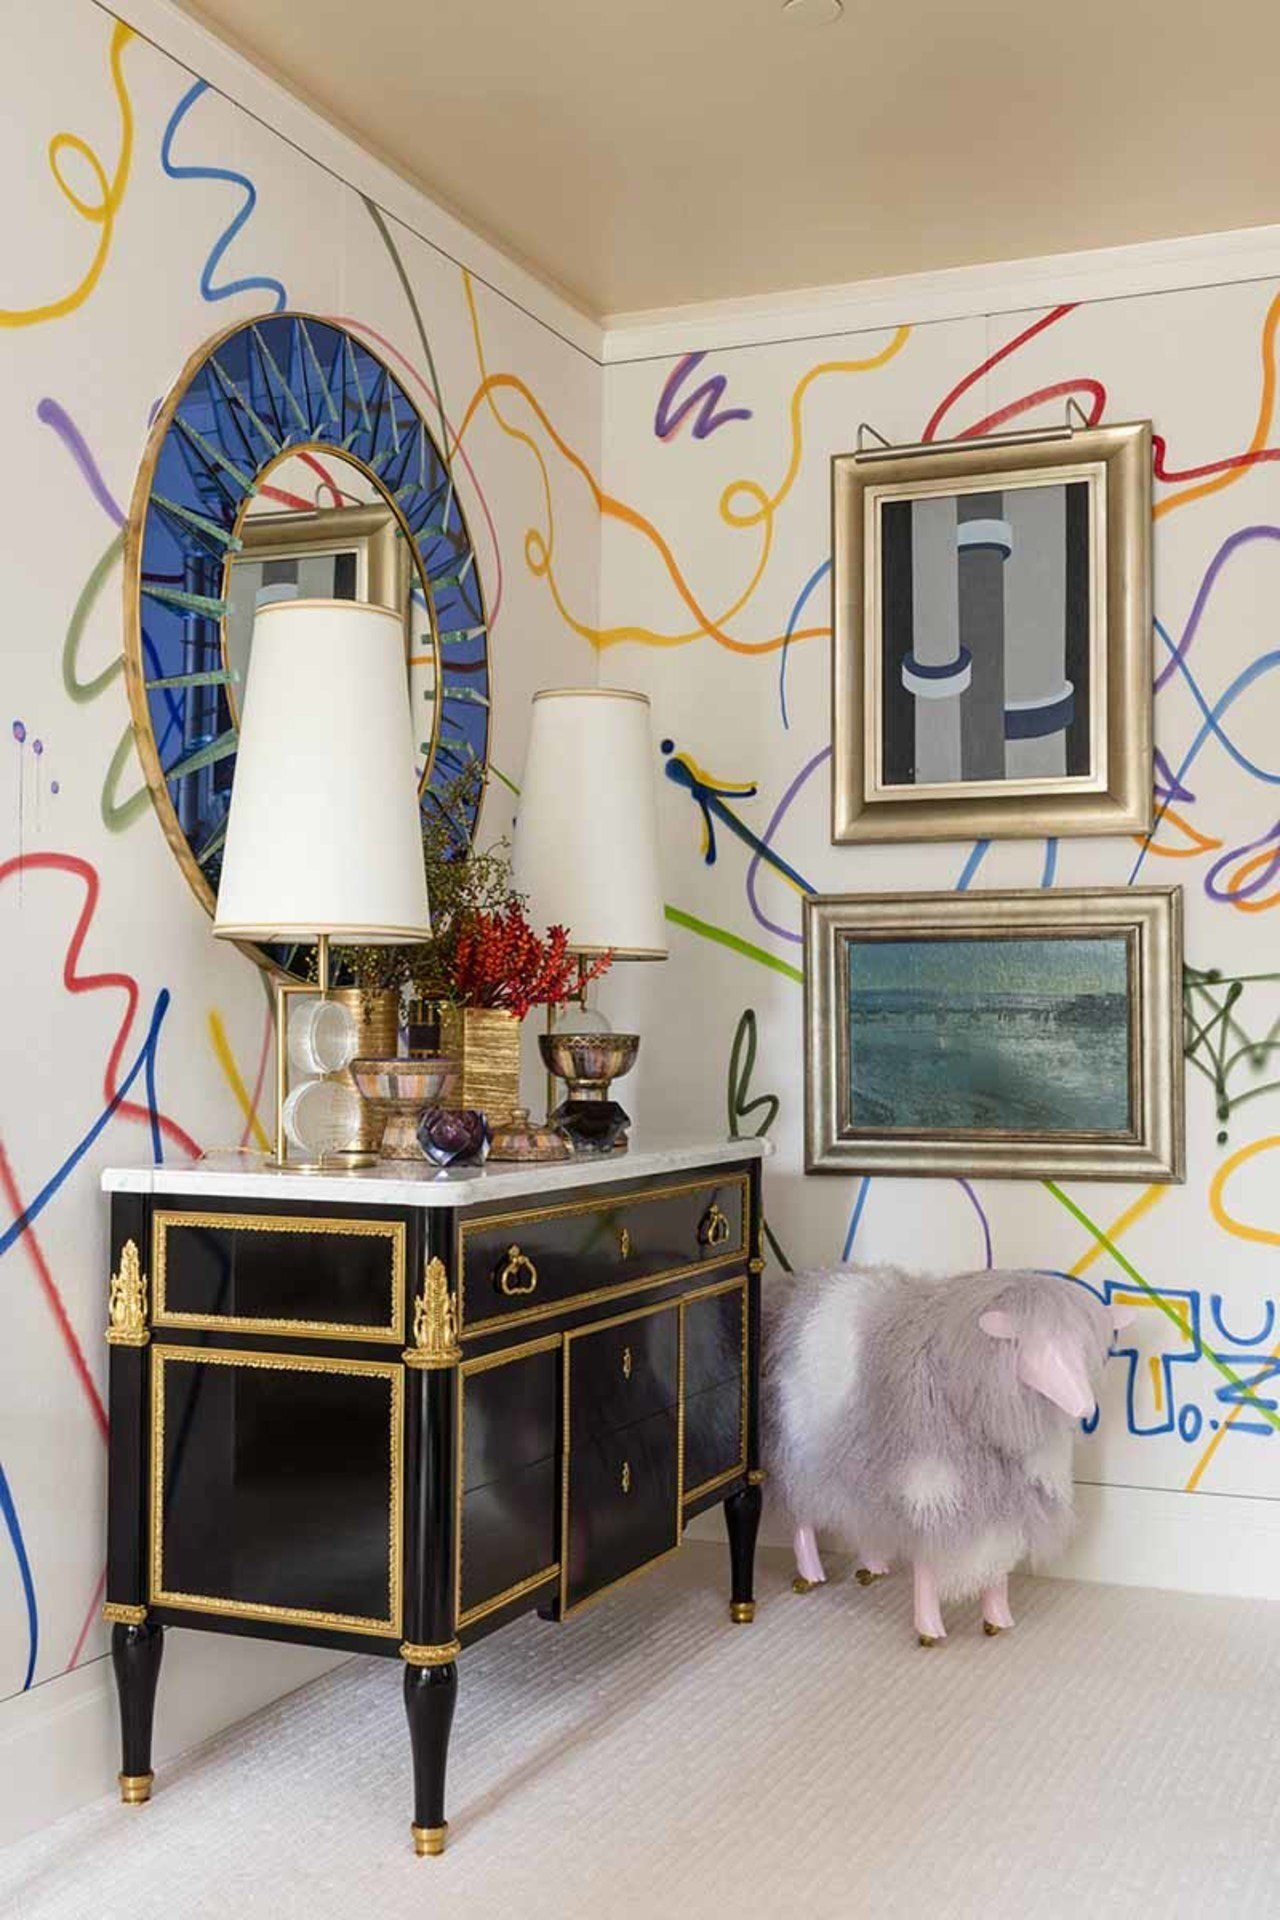 Graffiti Covered Walls Create A Whimsical Backdrop For Antique Curio And Art In This Room Designed Bold Paint Colors Antiques Minimalism Interior